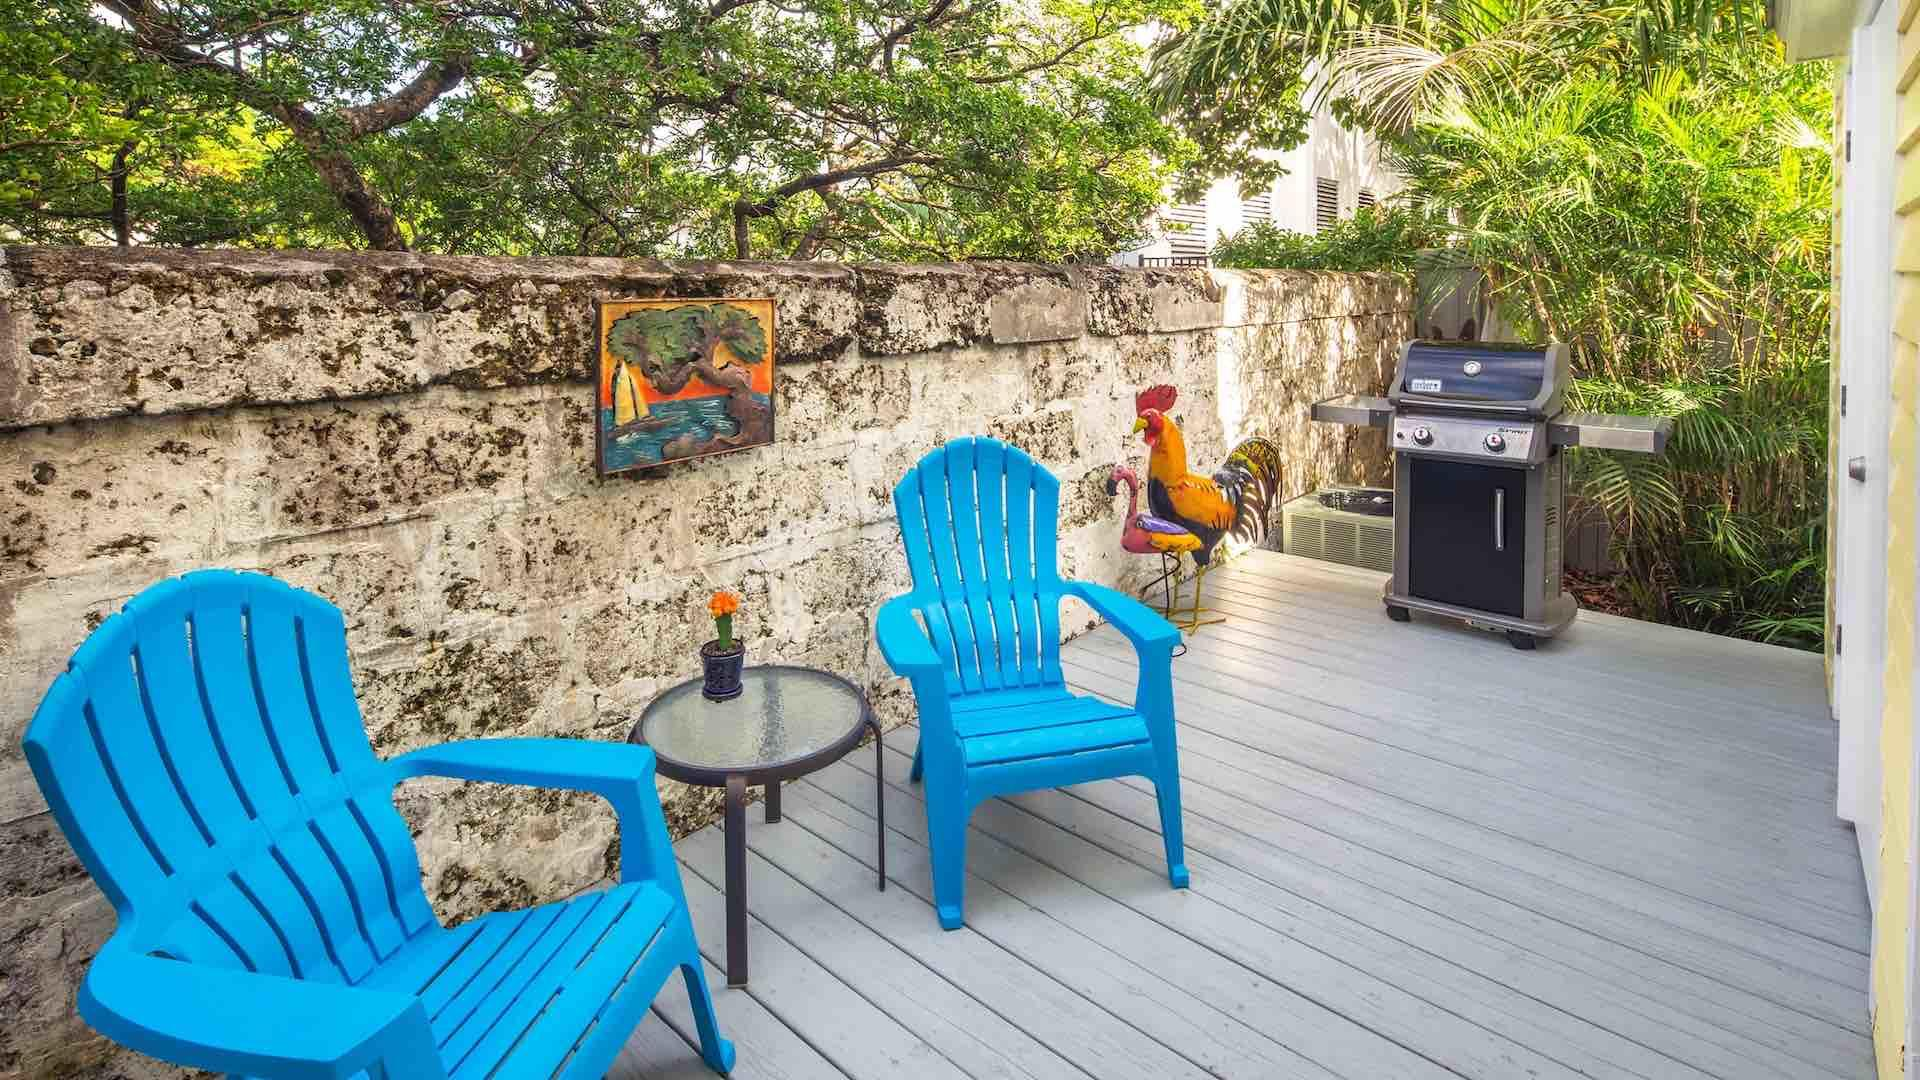 The back porch is equipped with a propane grill and outdoor seating...